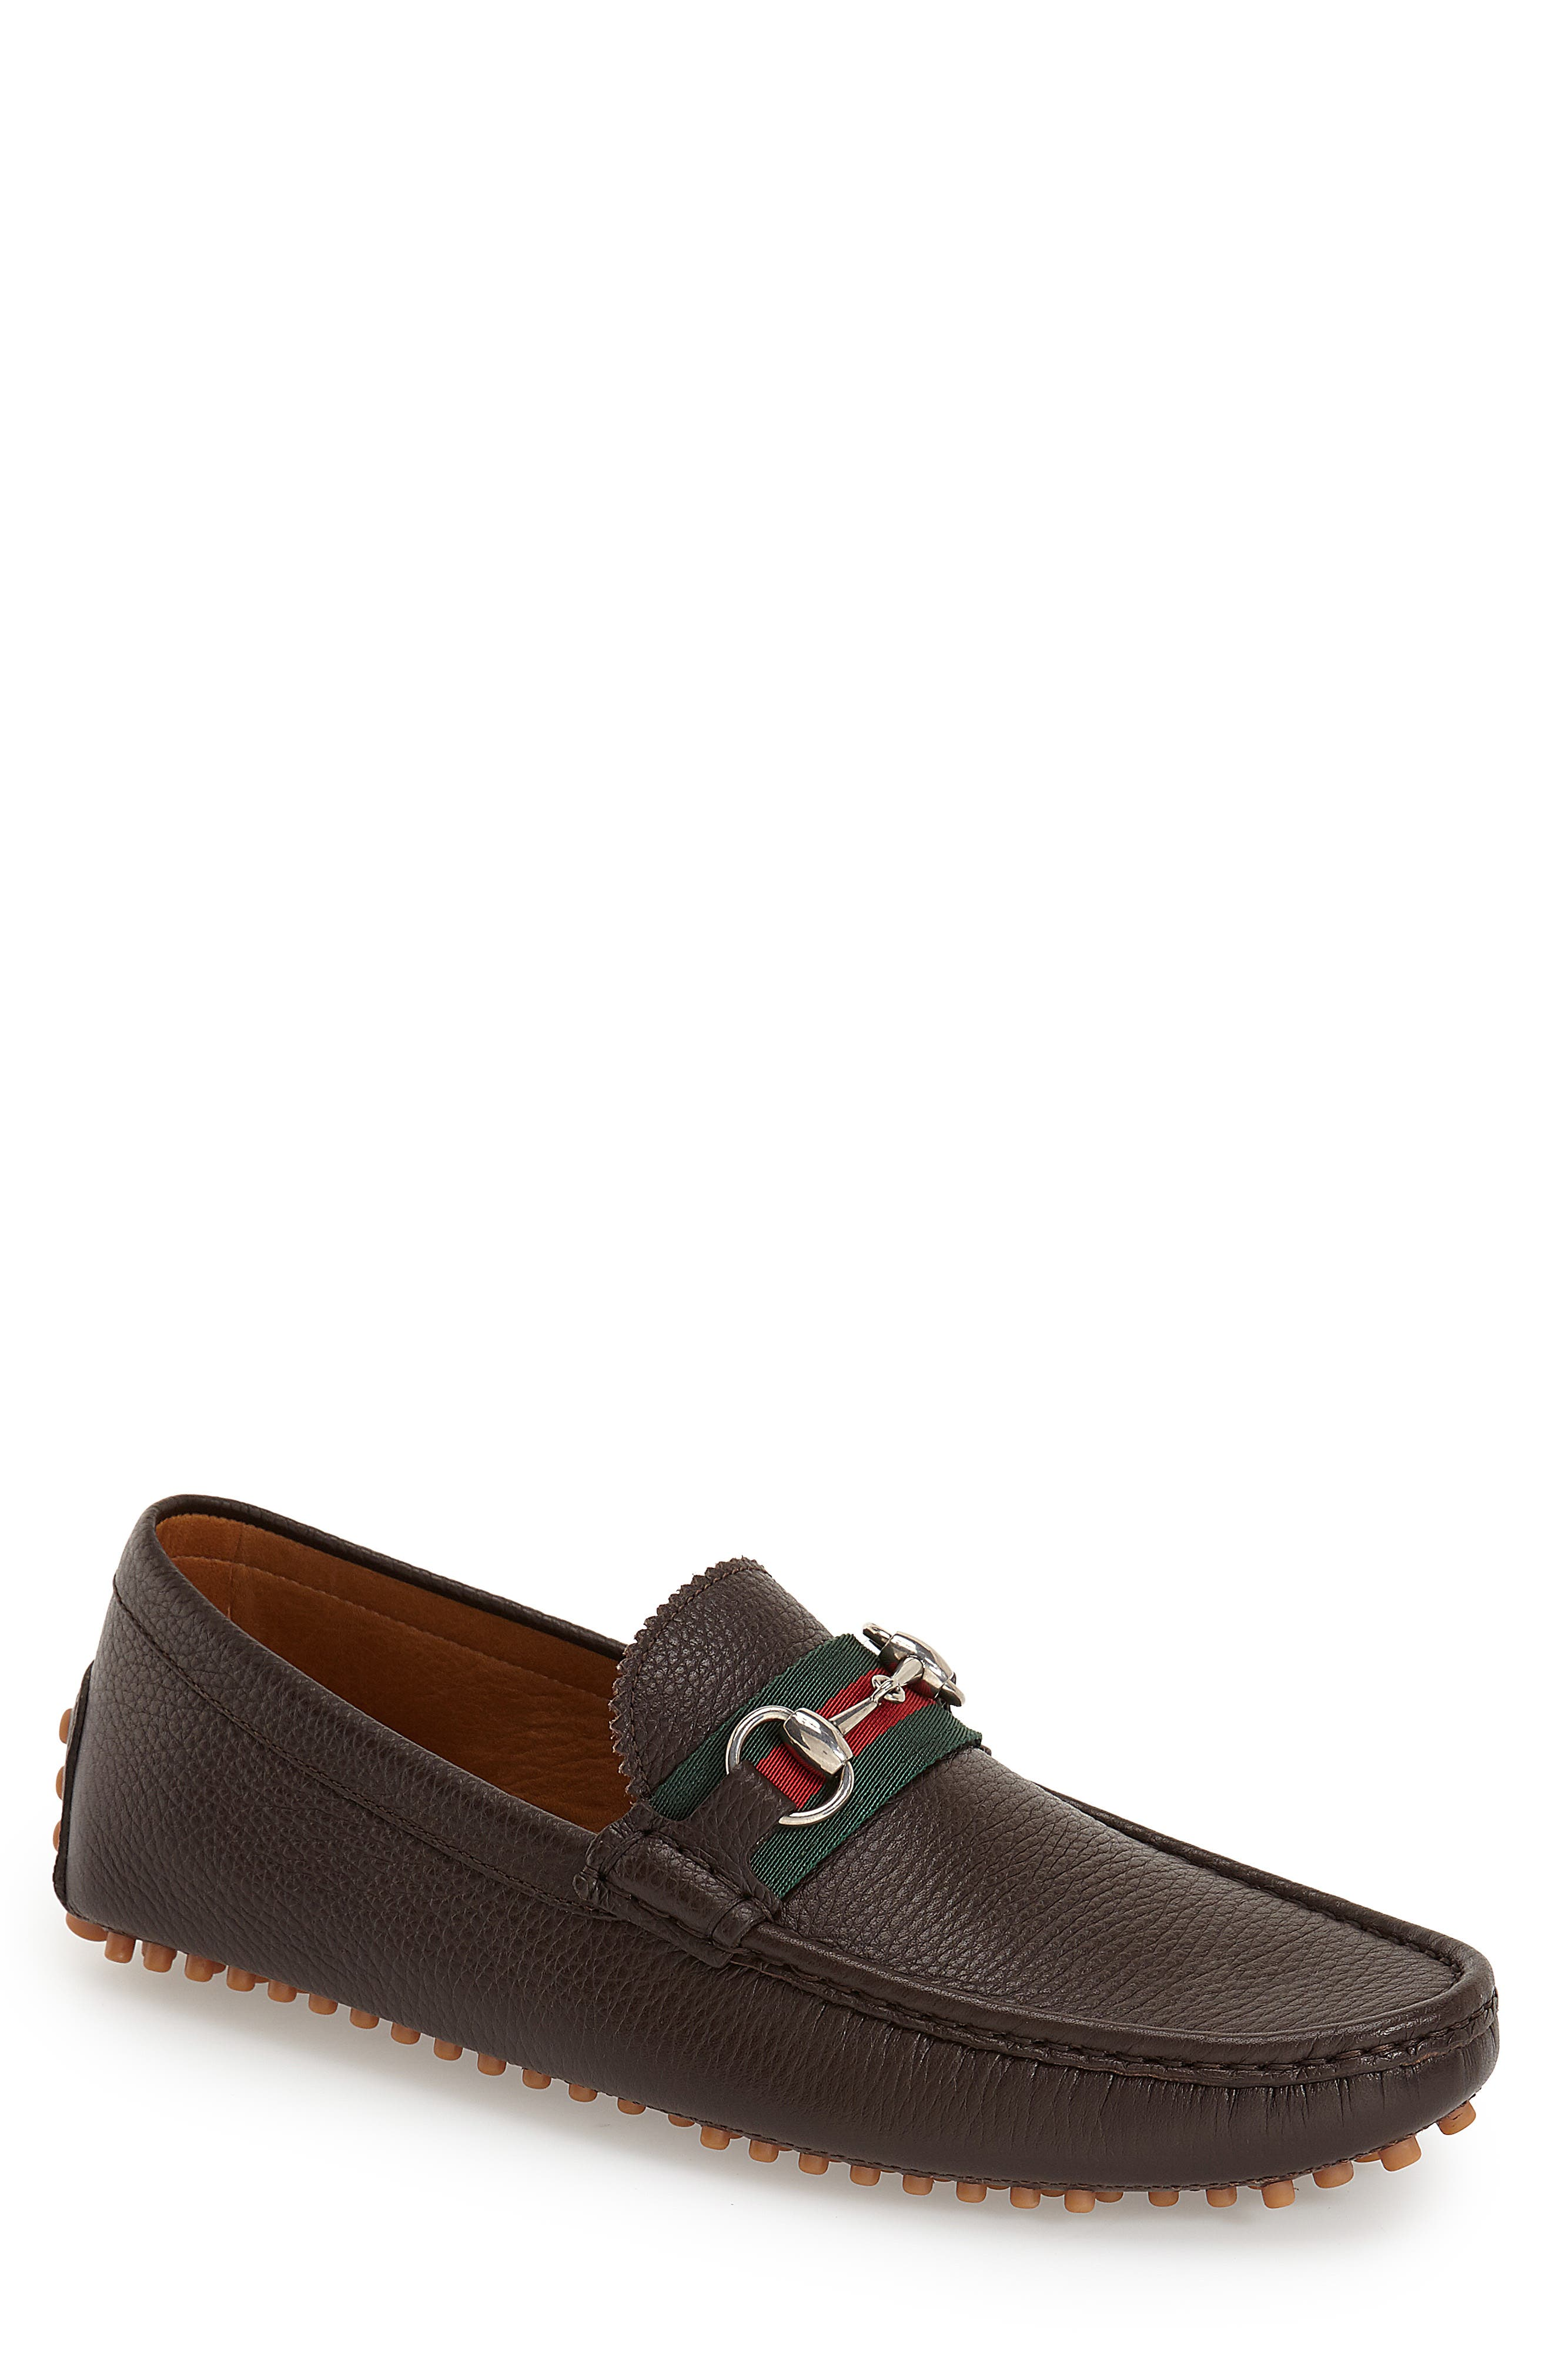 Main Image - Gucci 'Damo' Driving Shoe (Men)